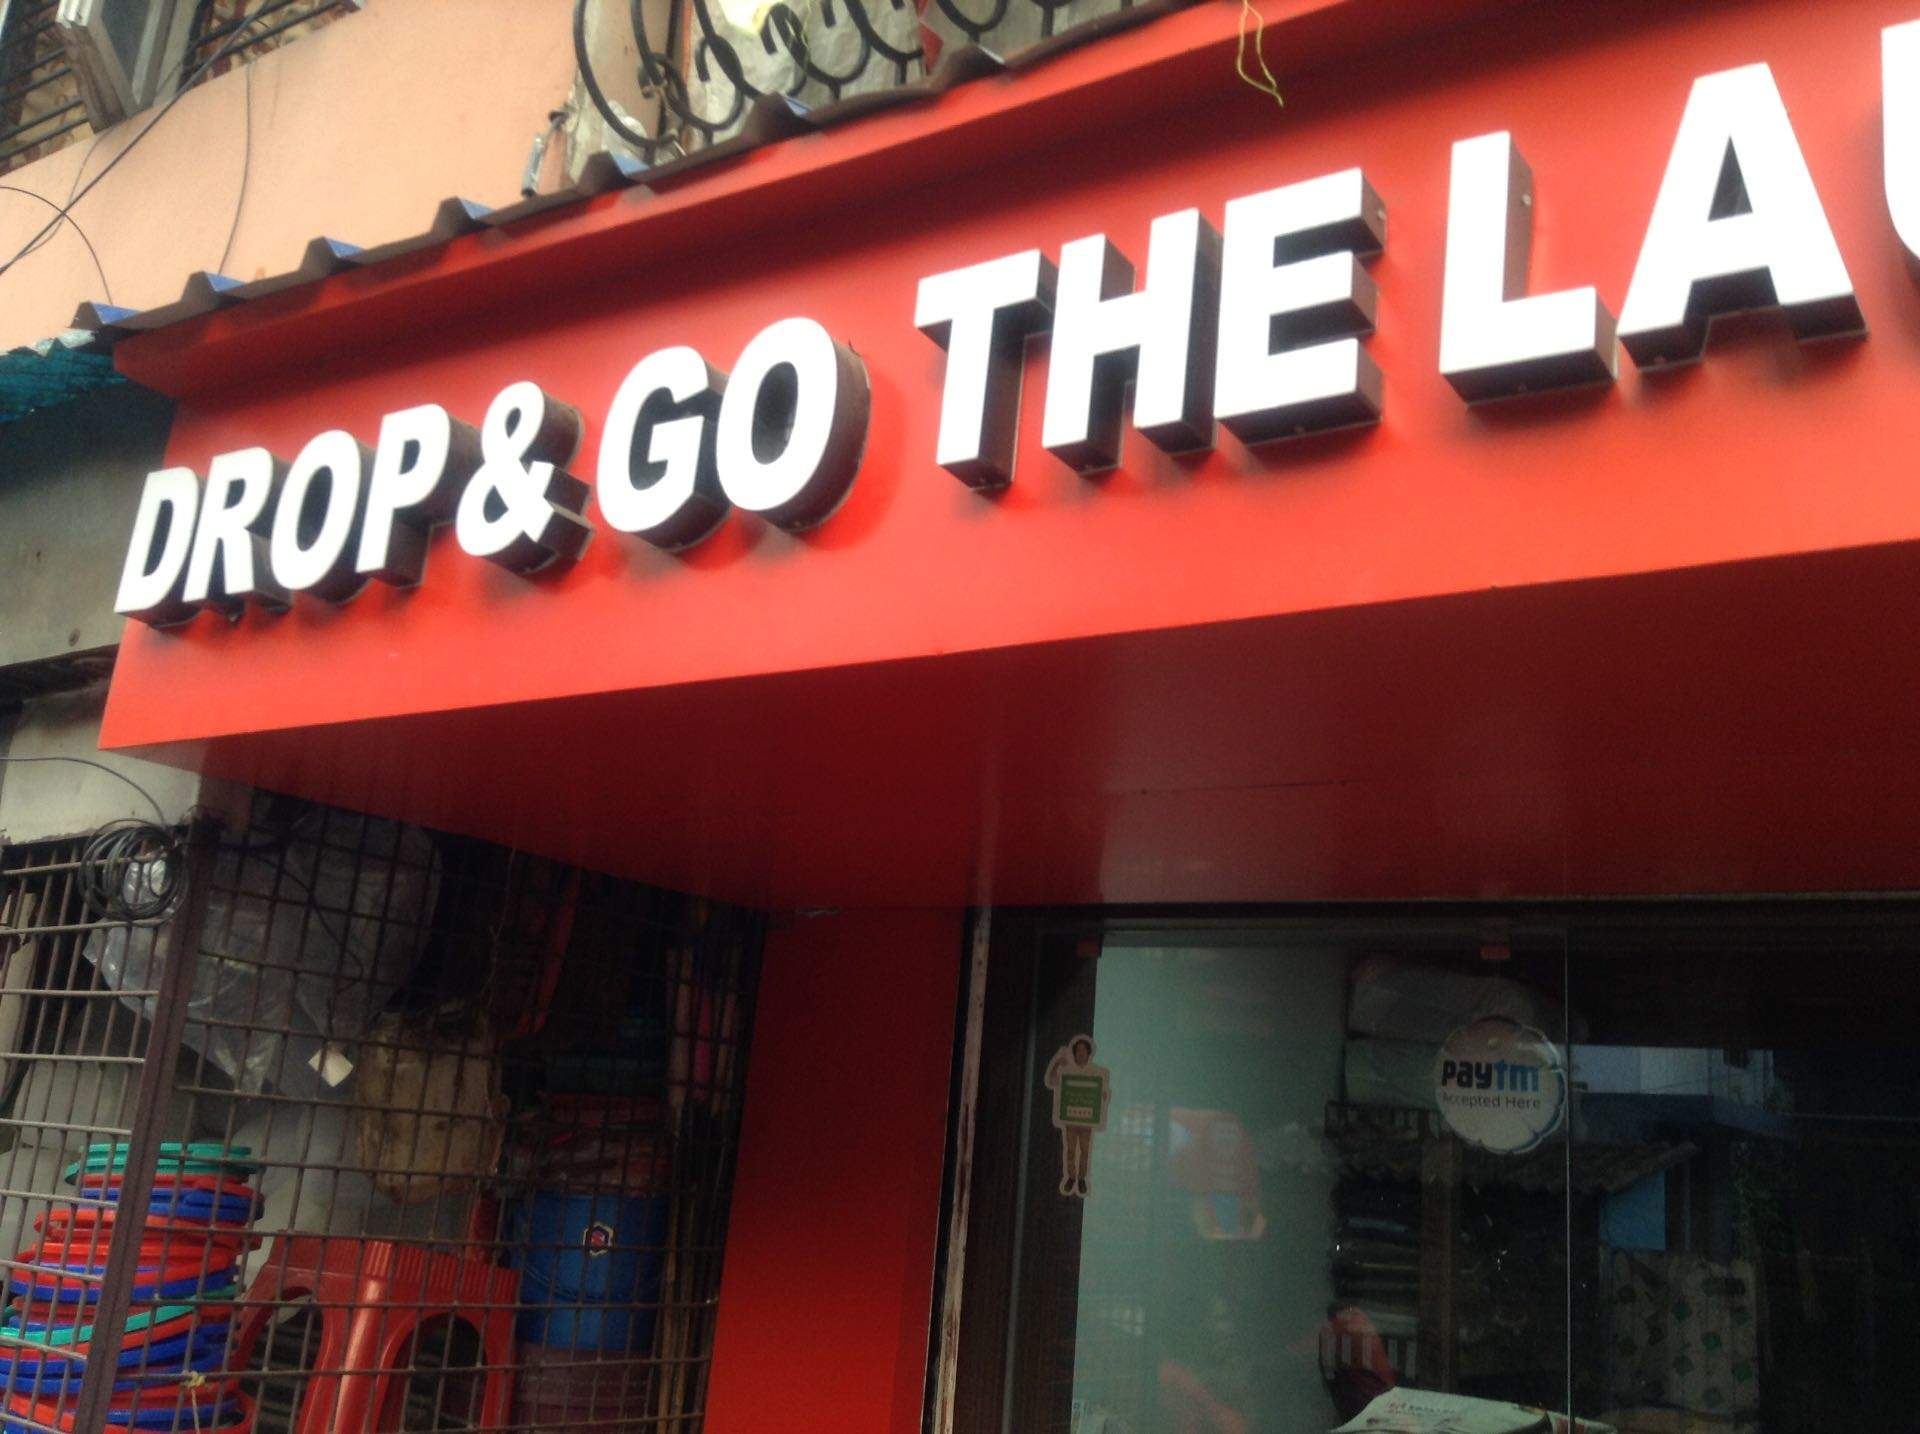 Drop & Go – The Laundry